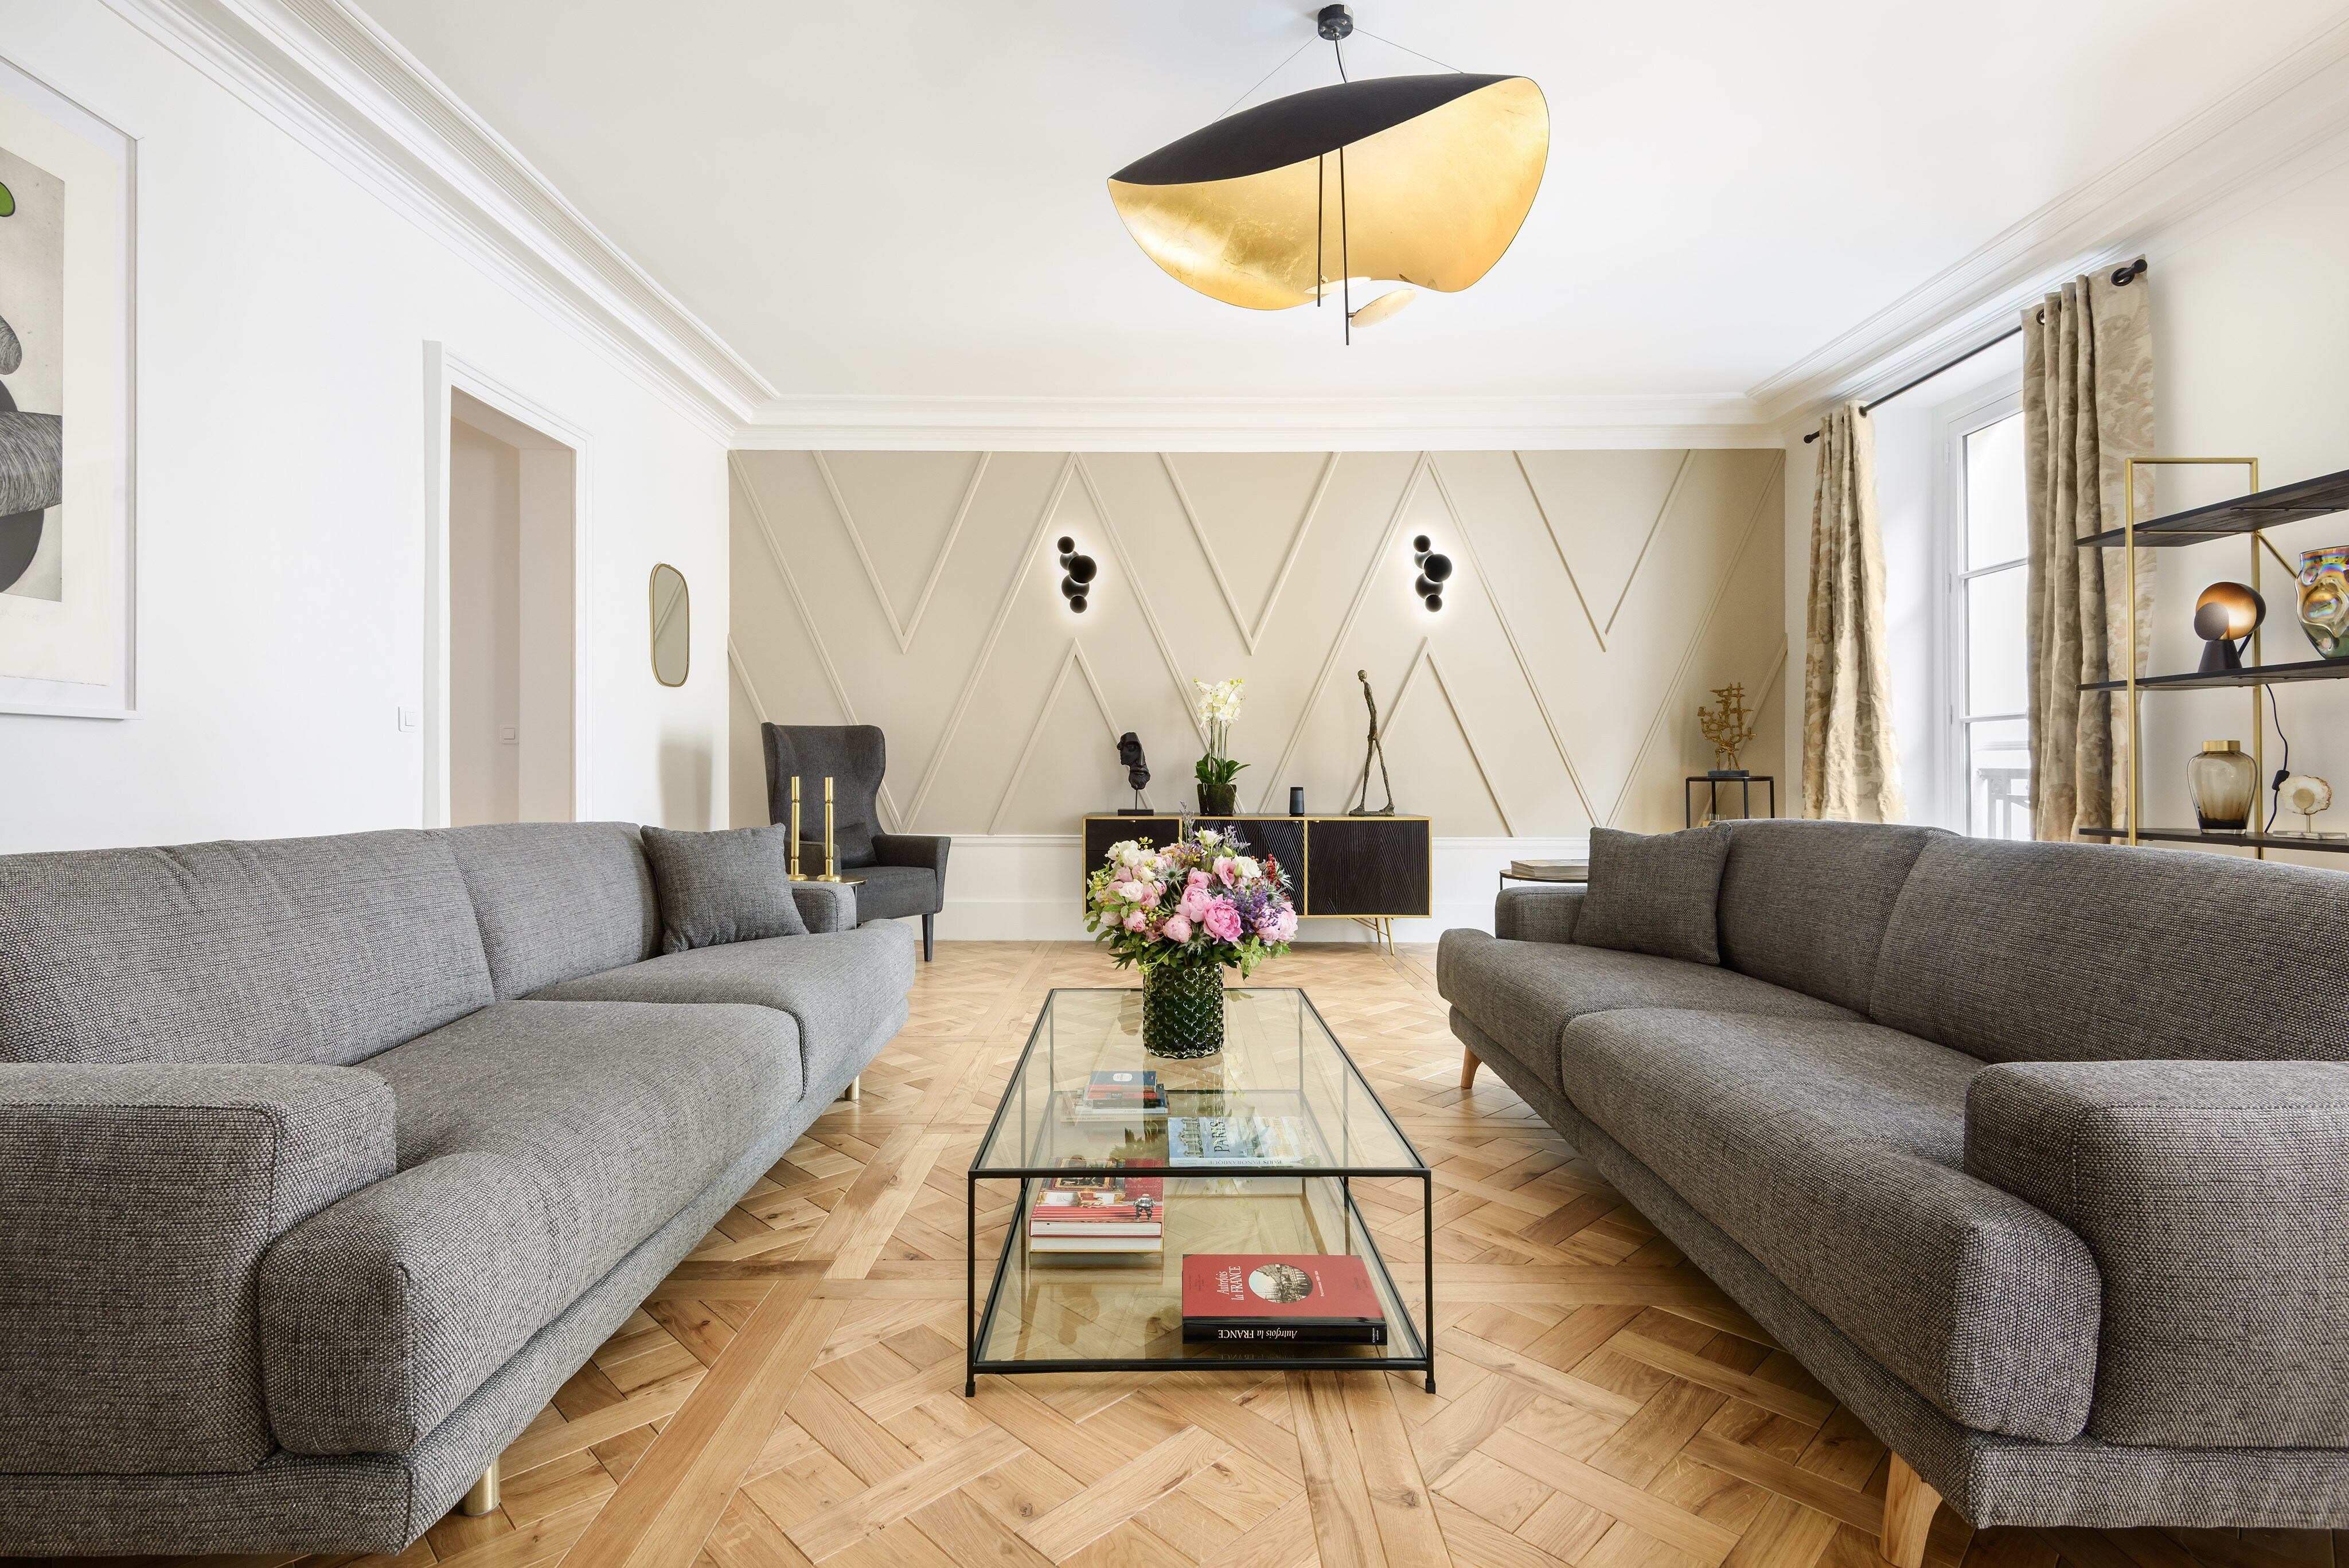 Property Image 2 - Modern Chic 2 bedroom apartment in the heart of the Marais